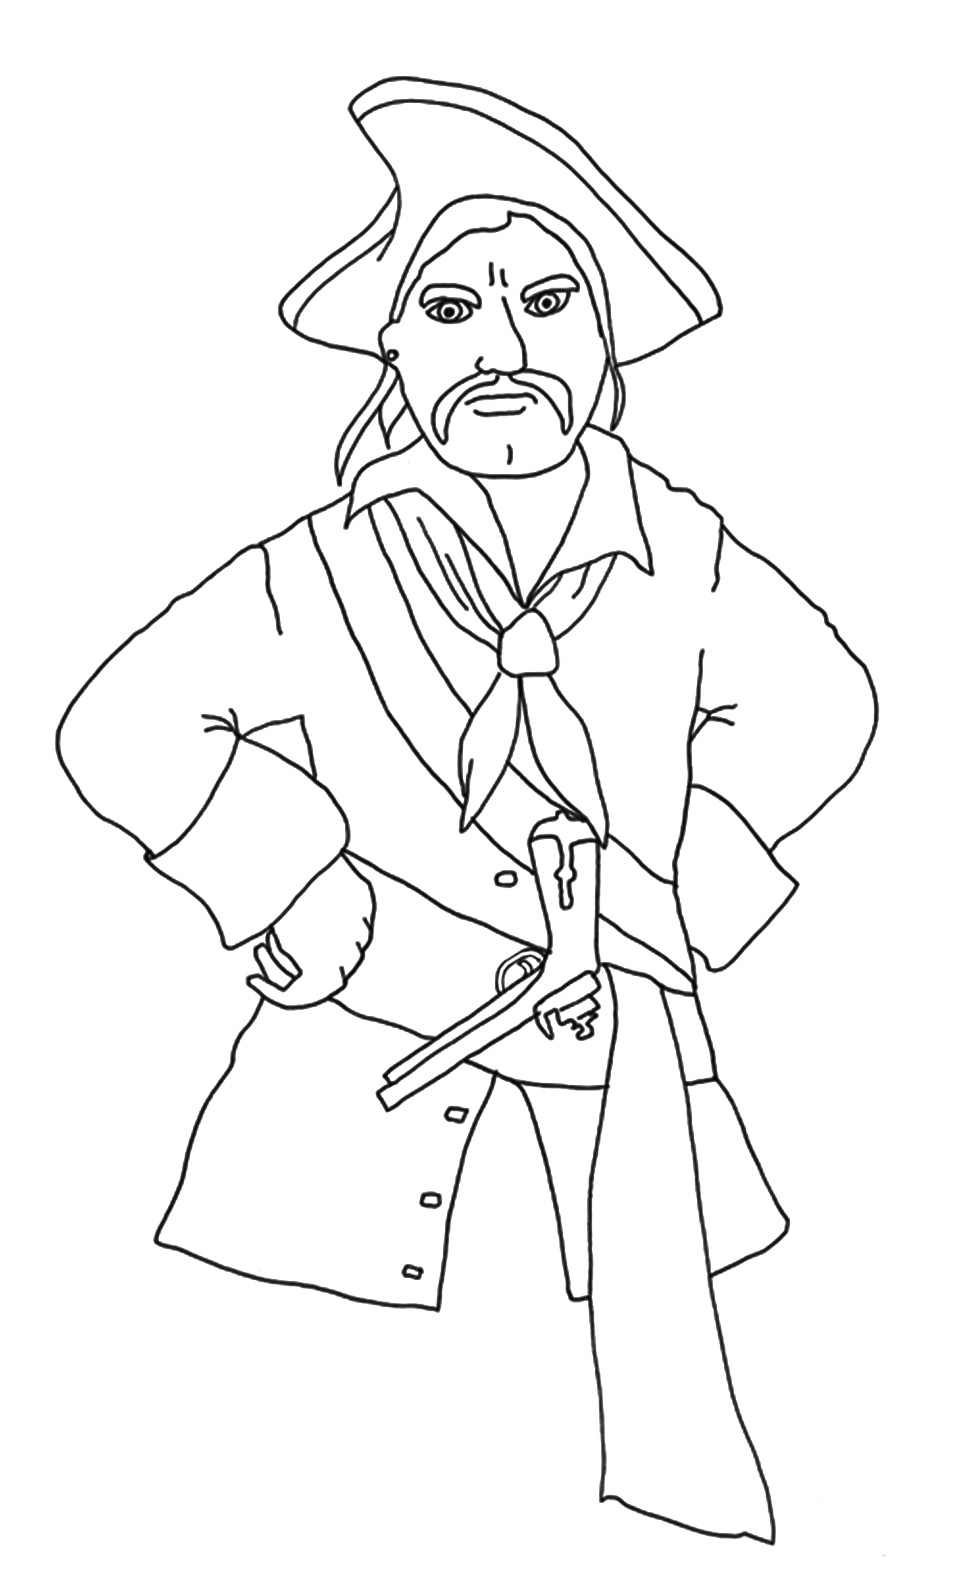 pirate coloring pirate coloring pages to download and print for free pirate coloring